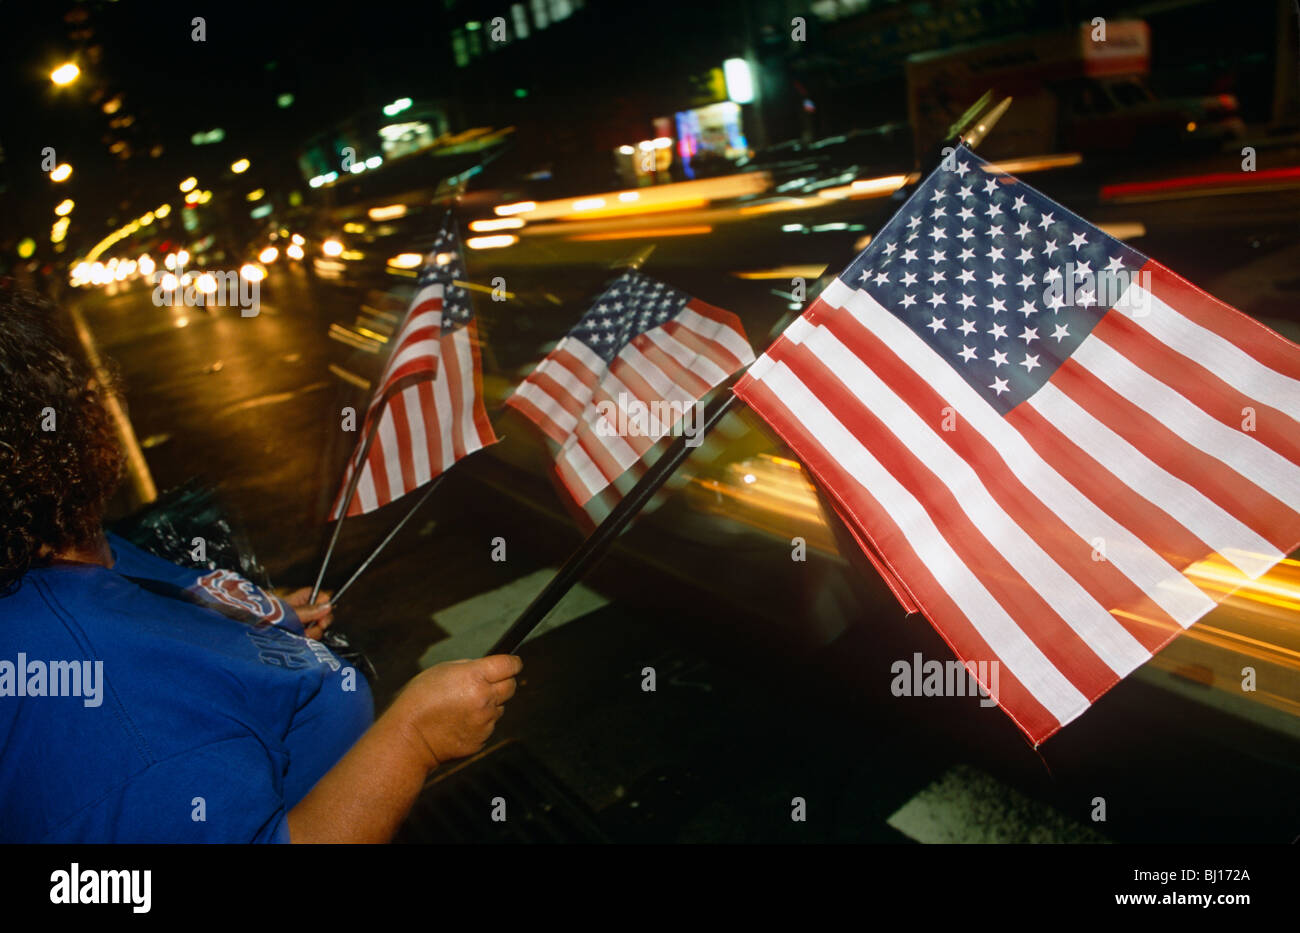 American flags are on sale at night in the streets of Manhattan, only days after the attacks on New York's twin - Stock Image